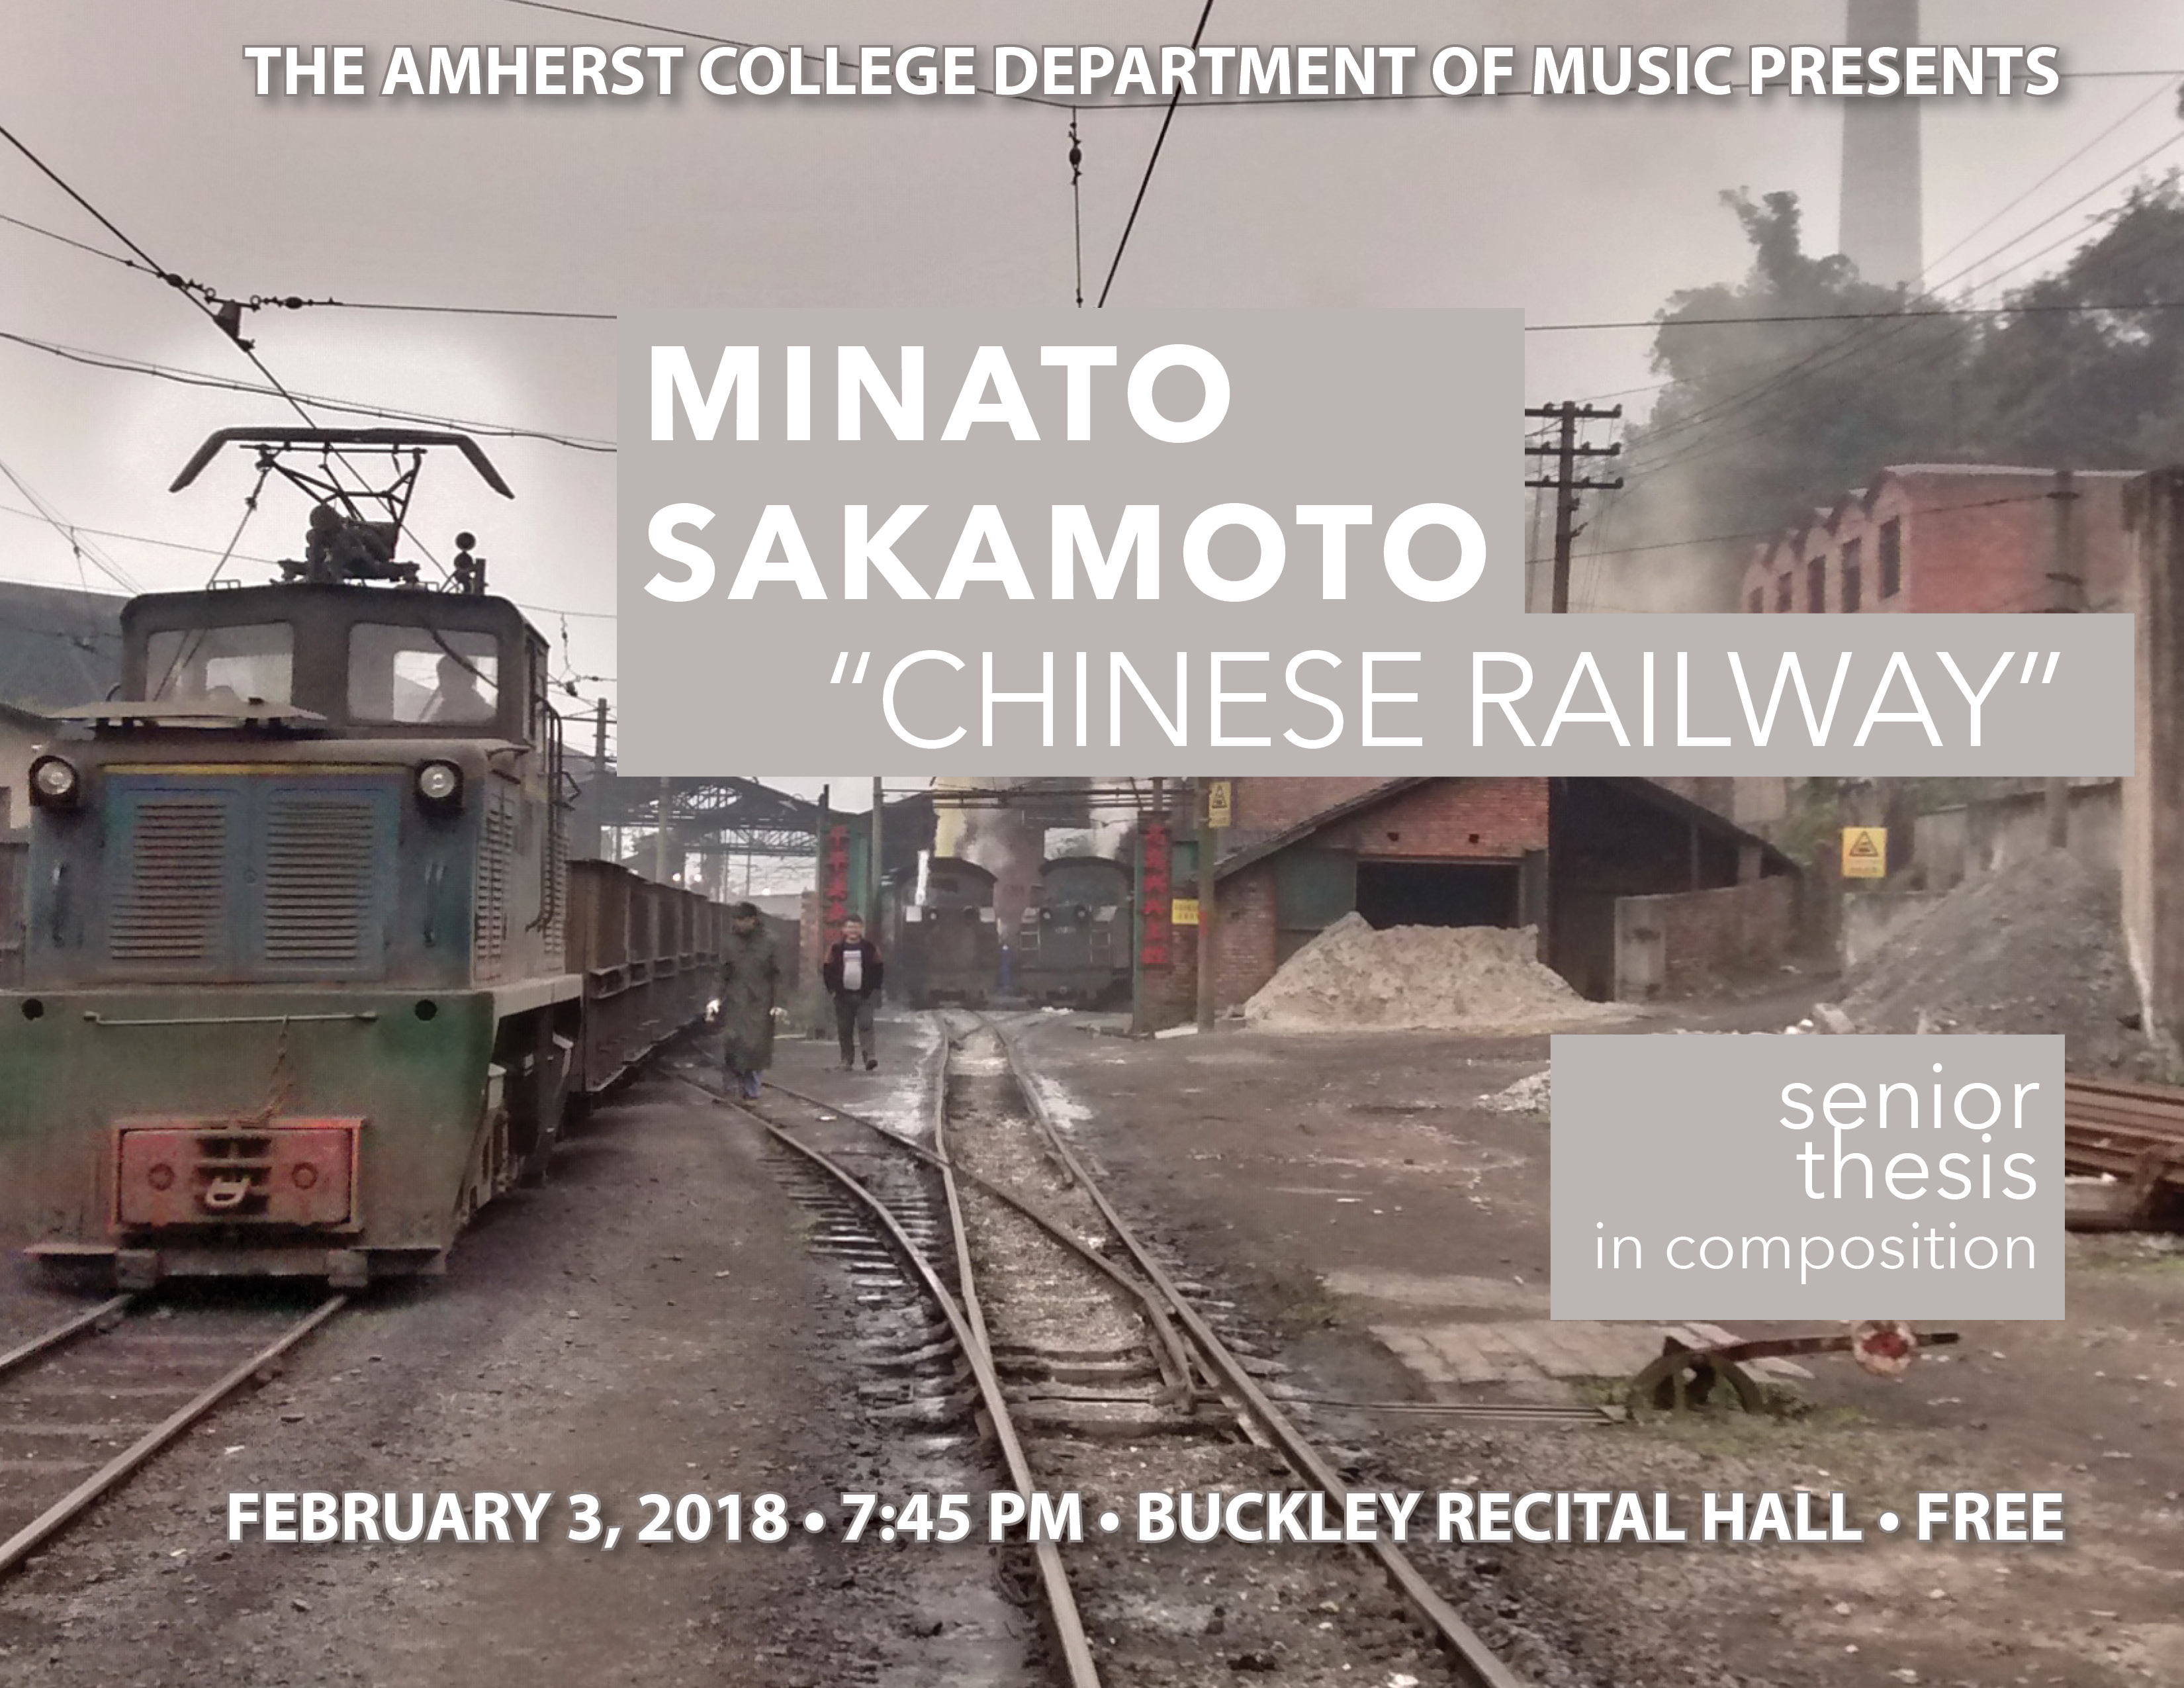 news events performance theses gabriela smith rosario and   chinese railway original composition by minato sakamoto 18